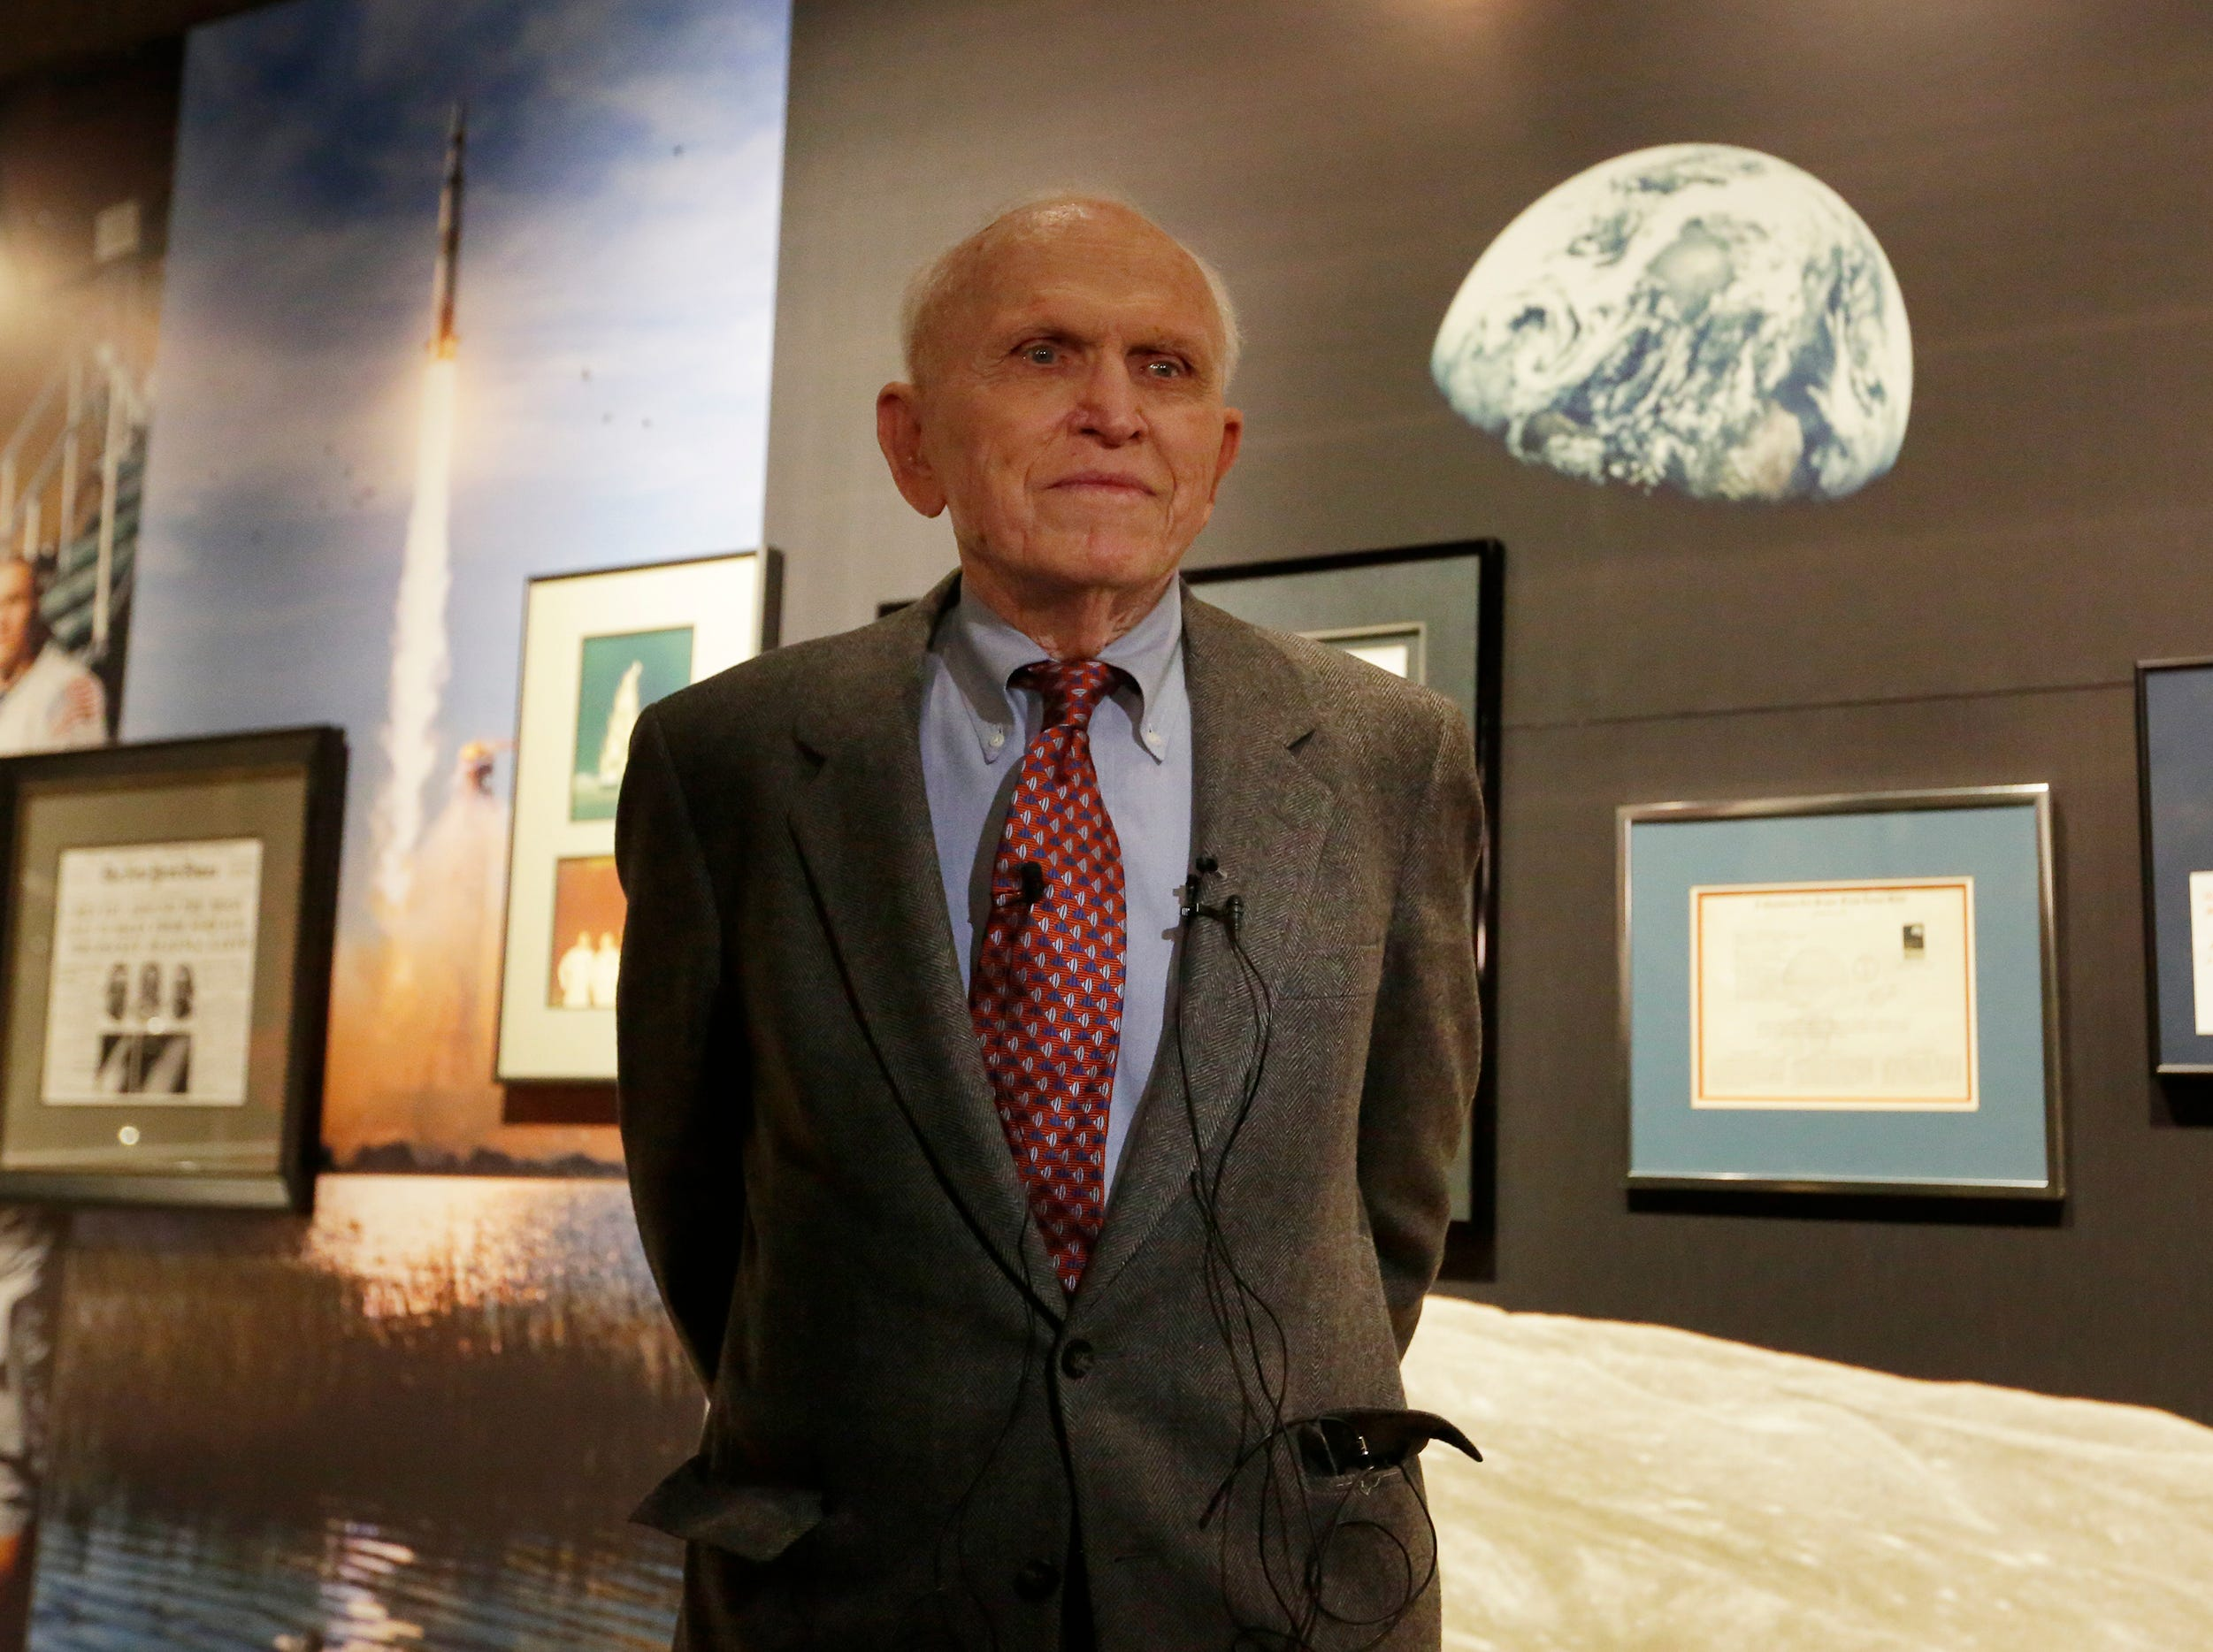 """Astronaut Frank Norman stands in front of his exhibit.  The EAA Aviation Museum in Oshkosh, Wis. has opened """"The Borman Collection: An EAA Member's Space Odyssey,"""" an exhibit that features the personal archives and memorabilia of astronaut Frank Borman, who was on the leading edge of America's space program through the 1960s. The new exhibit was formally opened with a ribbon cutting by Borman on Friday, December 7, 2018.Joe Sienkiewicz/USA Today NETWORK-Wisconsin"""